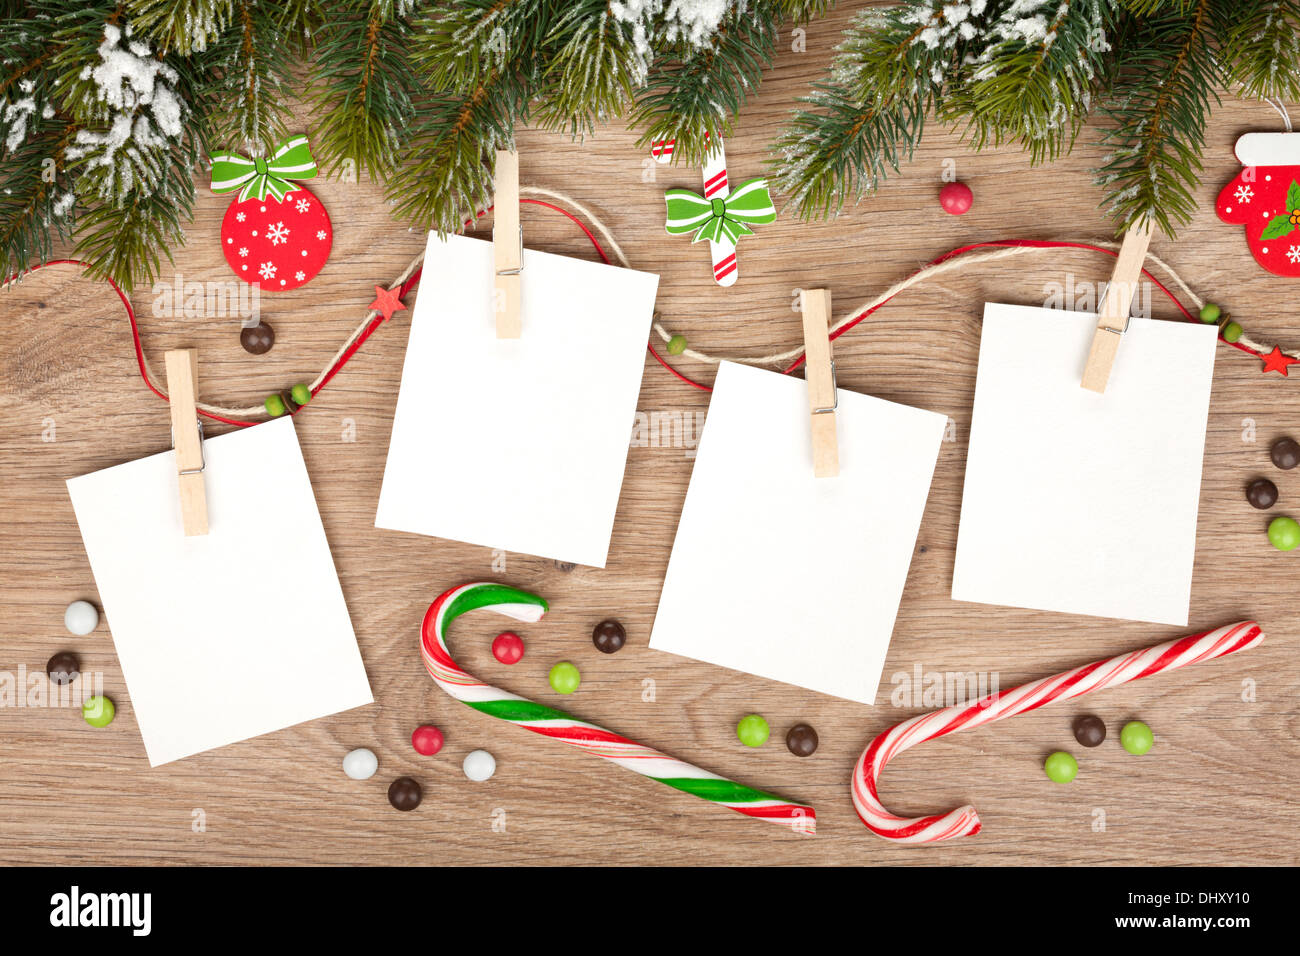 Blank Christmas Photo Frames With Fir Tree And Decor Stock Photo